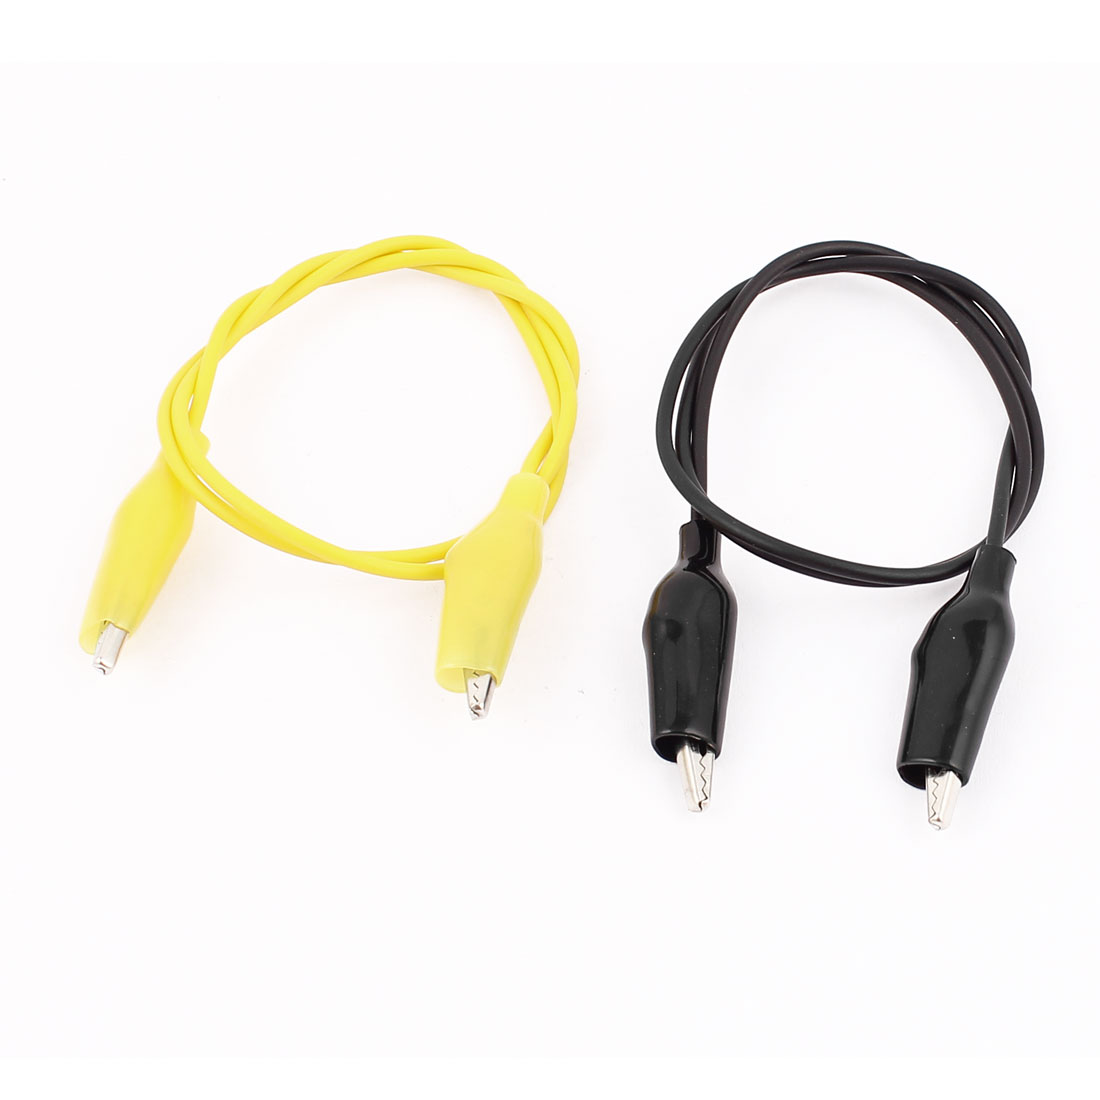 2pcs Black Yellow Dual Ended Alligator Crocodile Clip Test Leads Probe Wire Cable 47cm